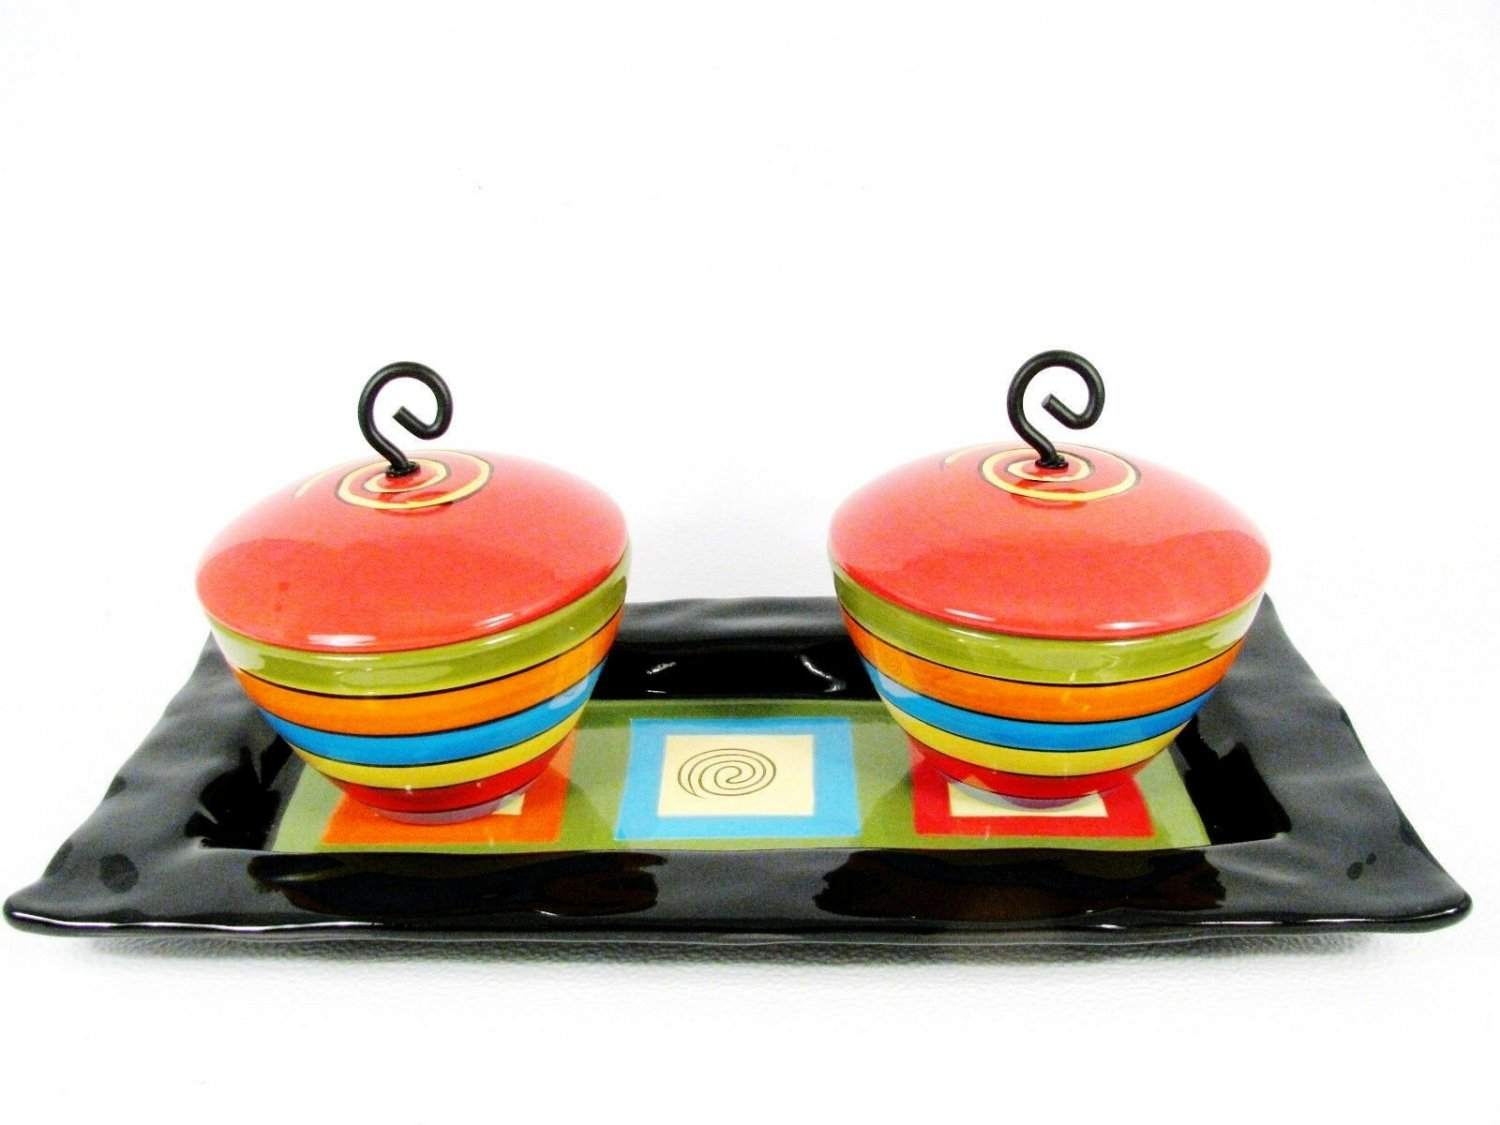 Popular Creations Rectangle Serving Tray & Dip Bowls Lidded Artisan Partyware